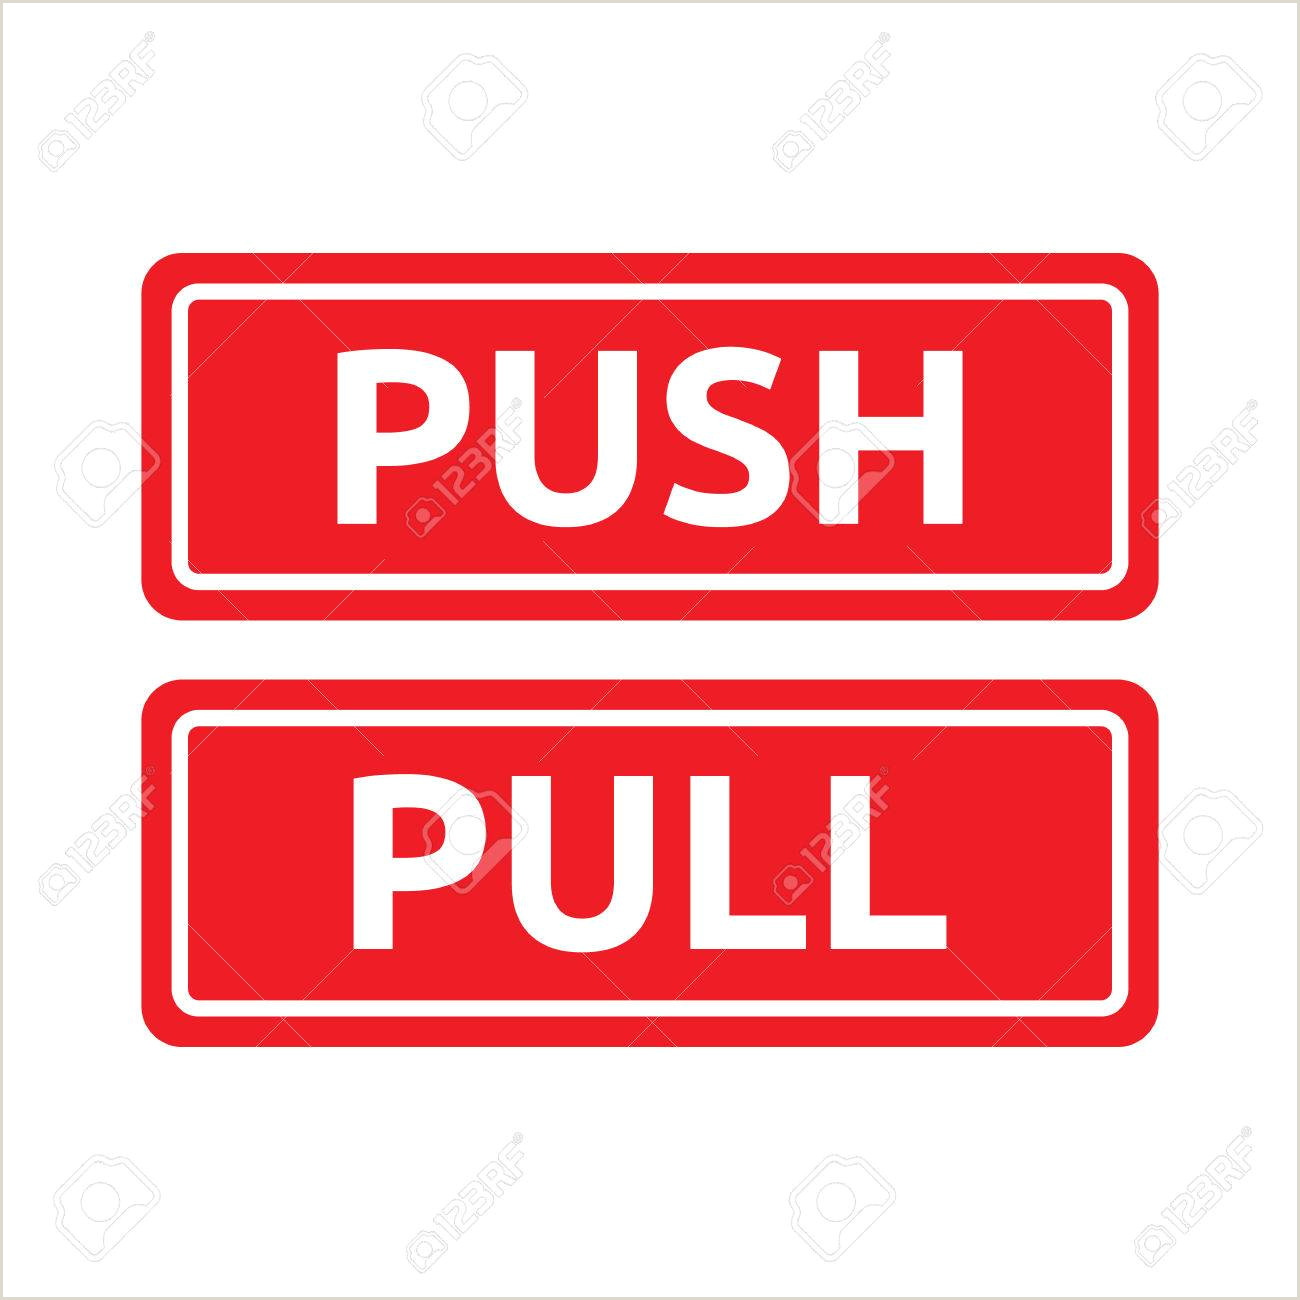 Pull Up Signage Push Pull Red Tag Signs